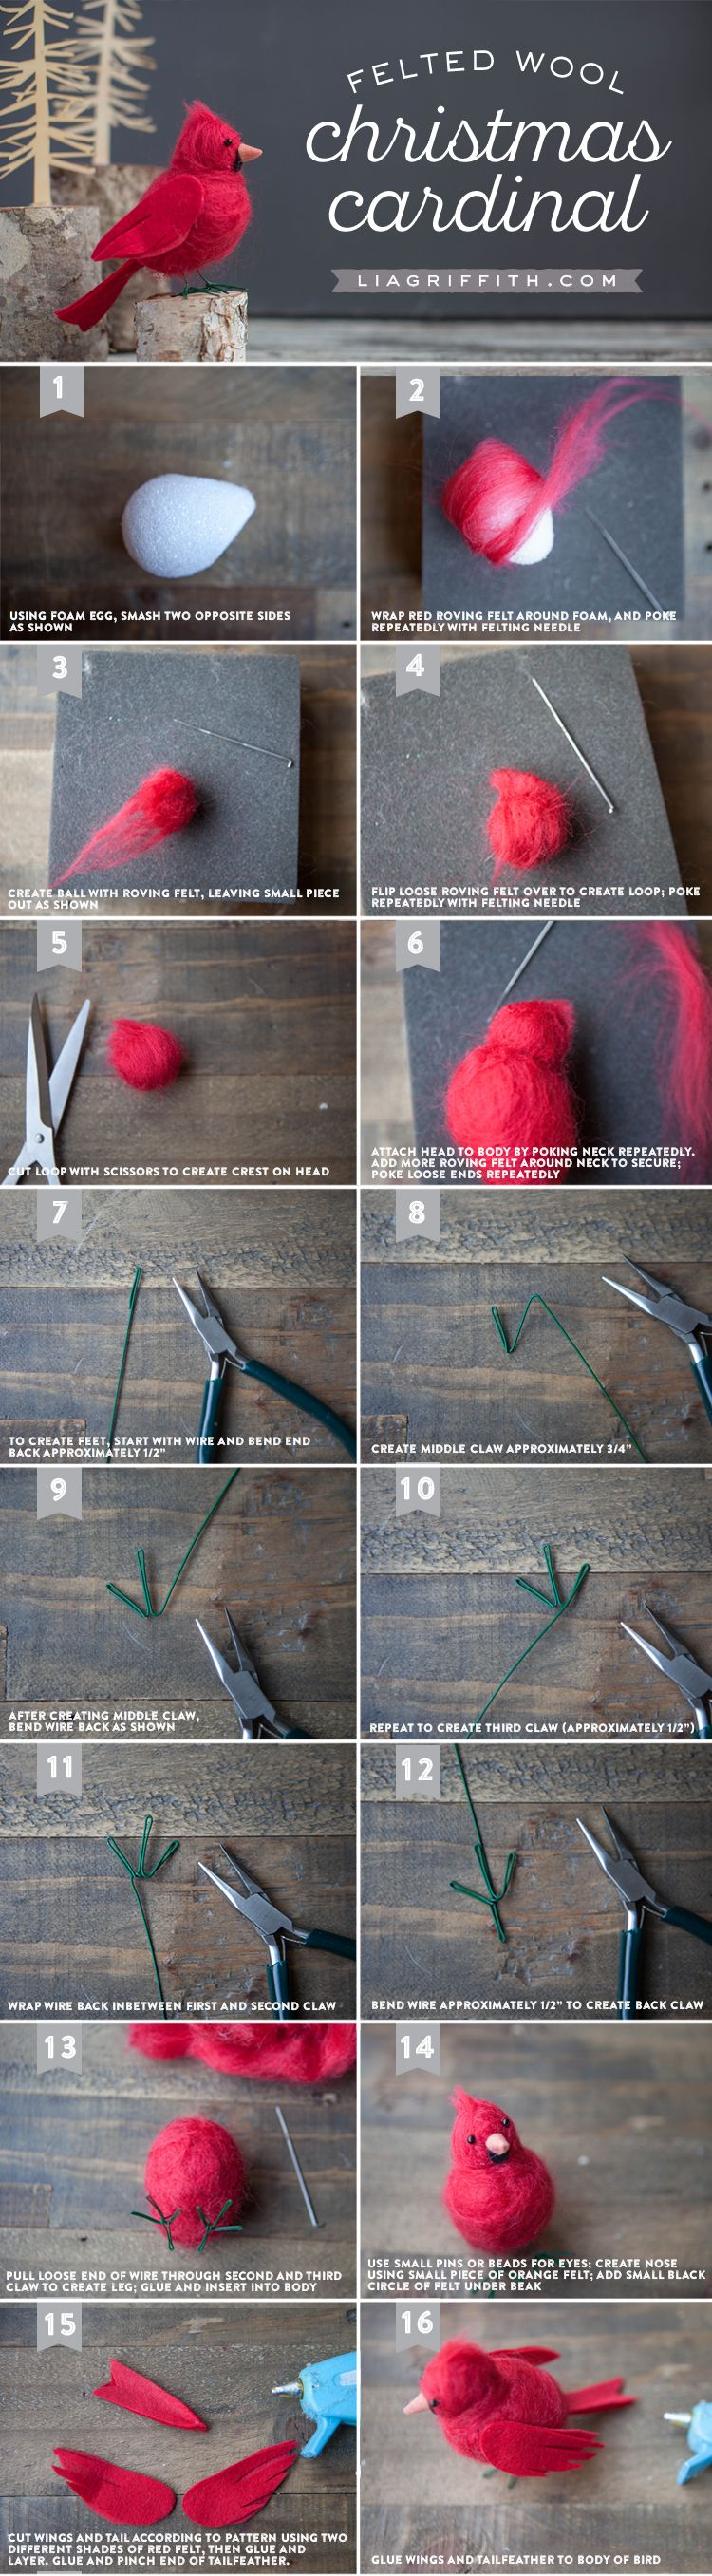 How to Make a Needle-Felted Cardinal Bird - Lia Griffith